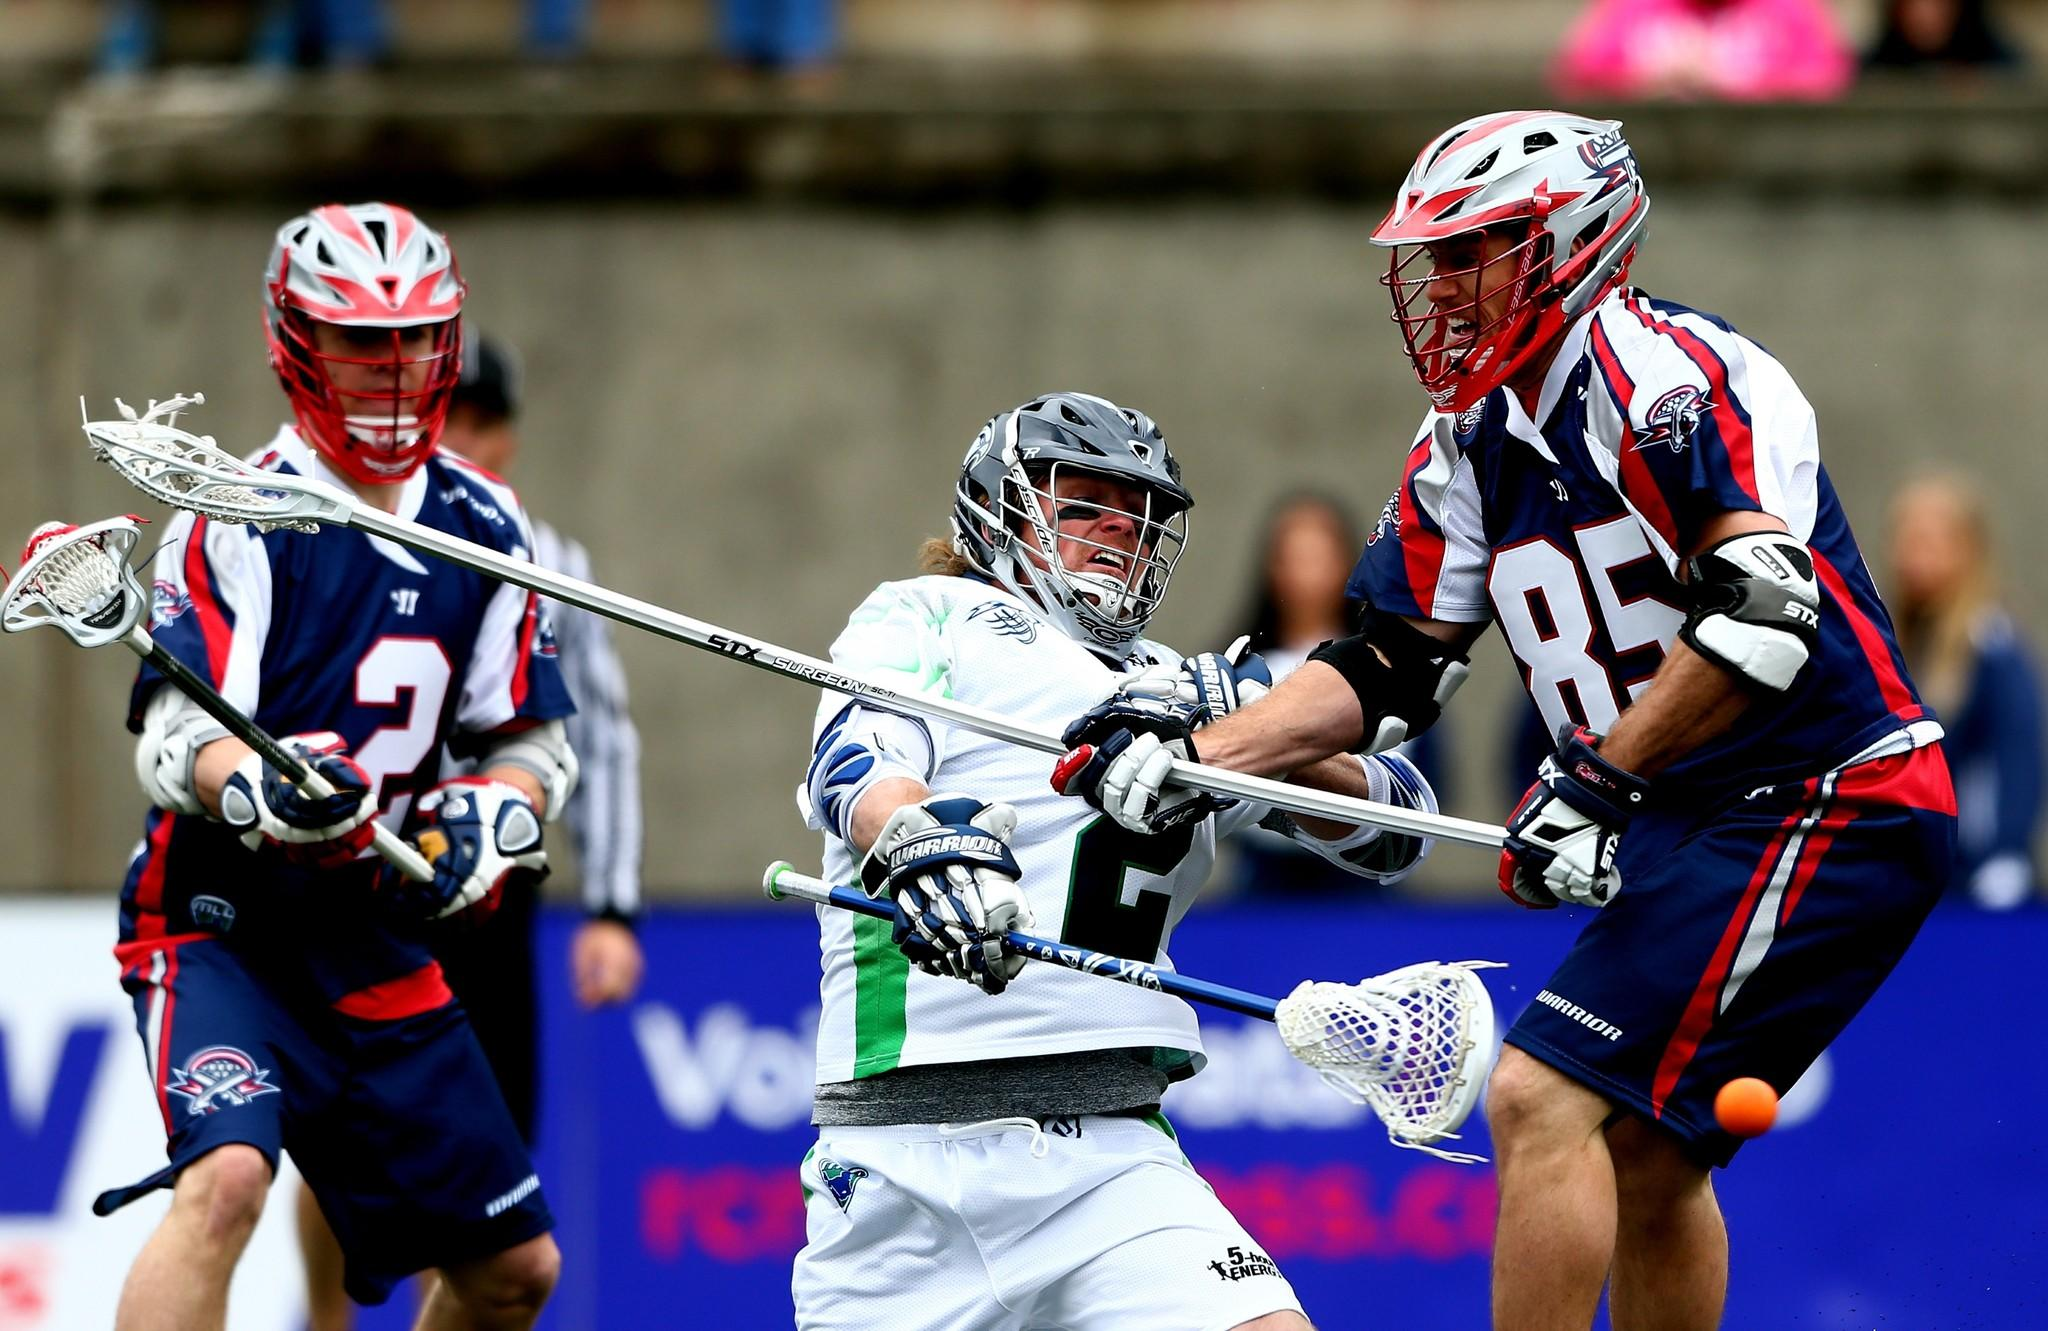 Brendan Mundorf (middle) of the Chesapeake Bayhawks goes to the goal as Mitch Belisle (85) and Scott Ratliff of the Boston Cannons defend.